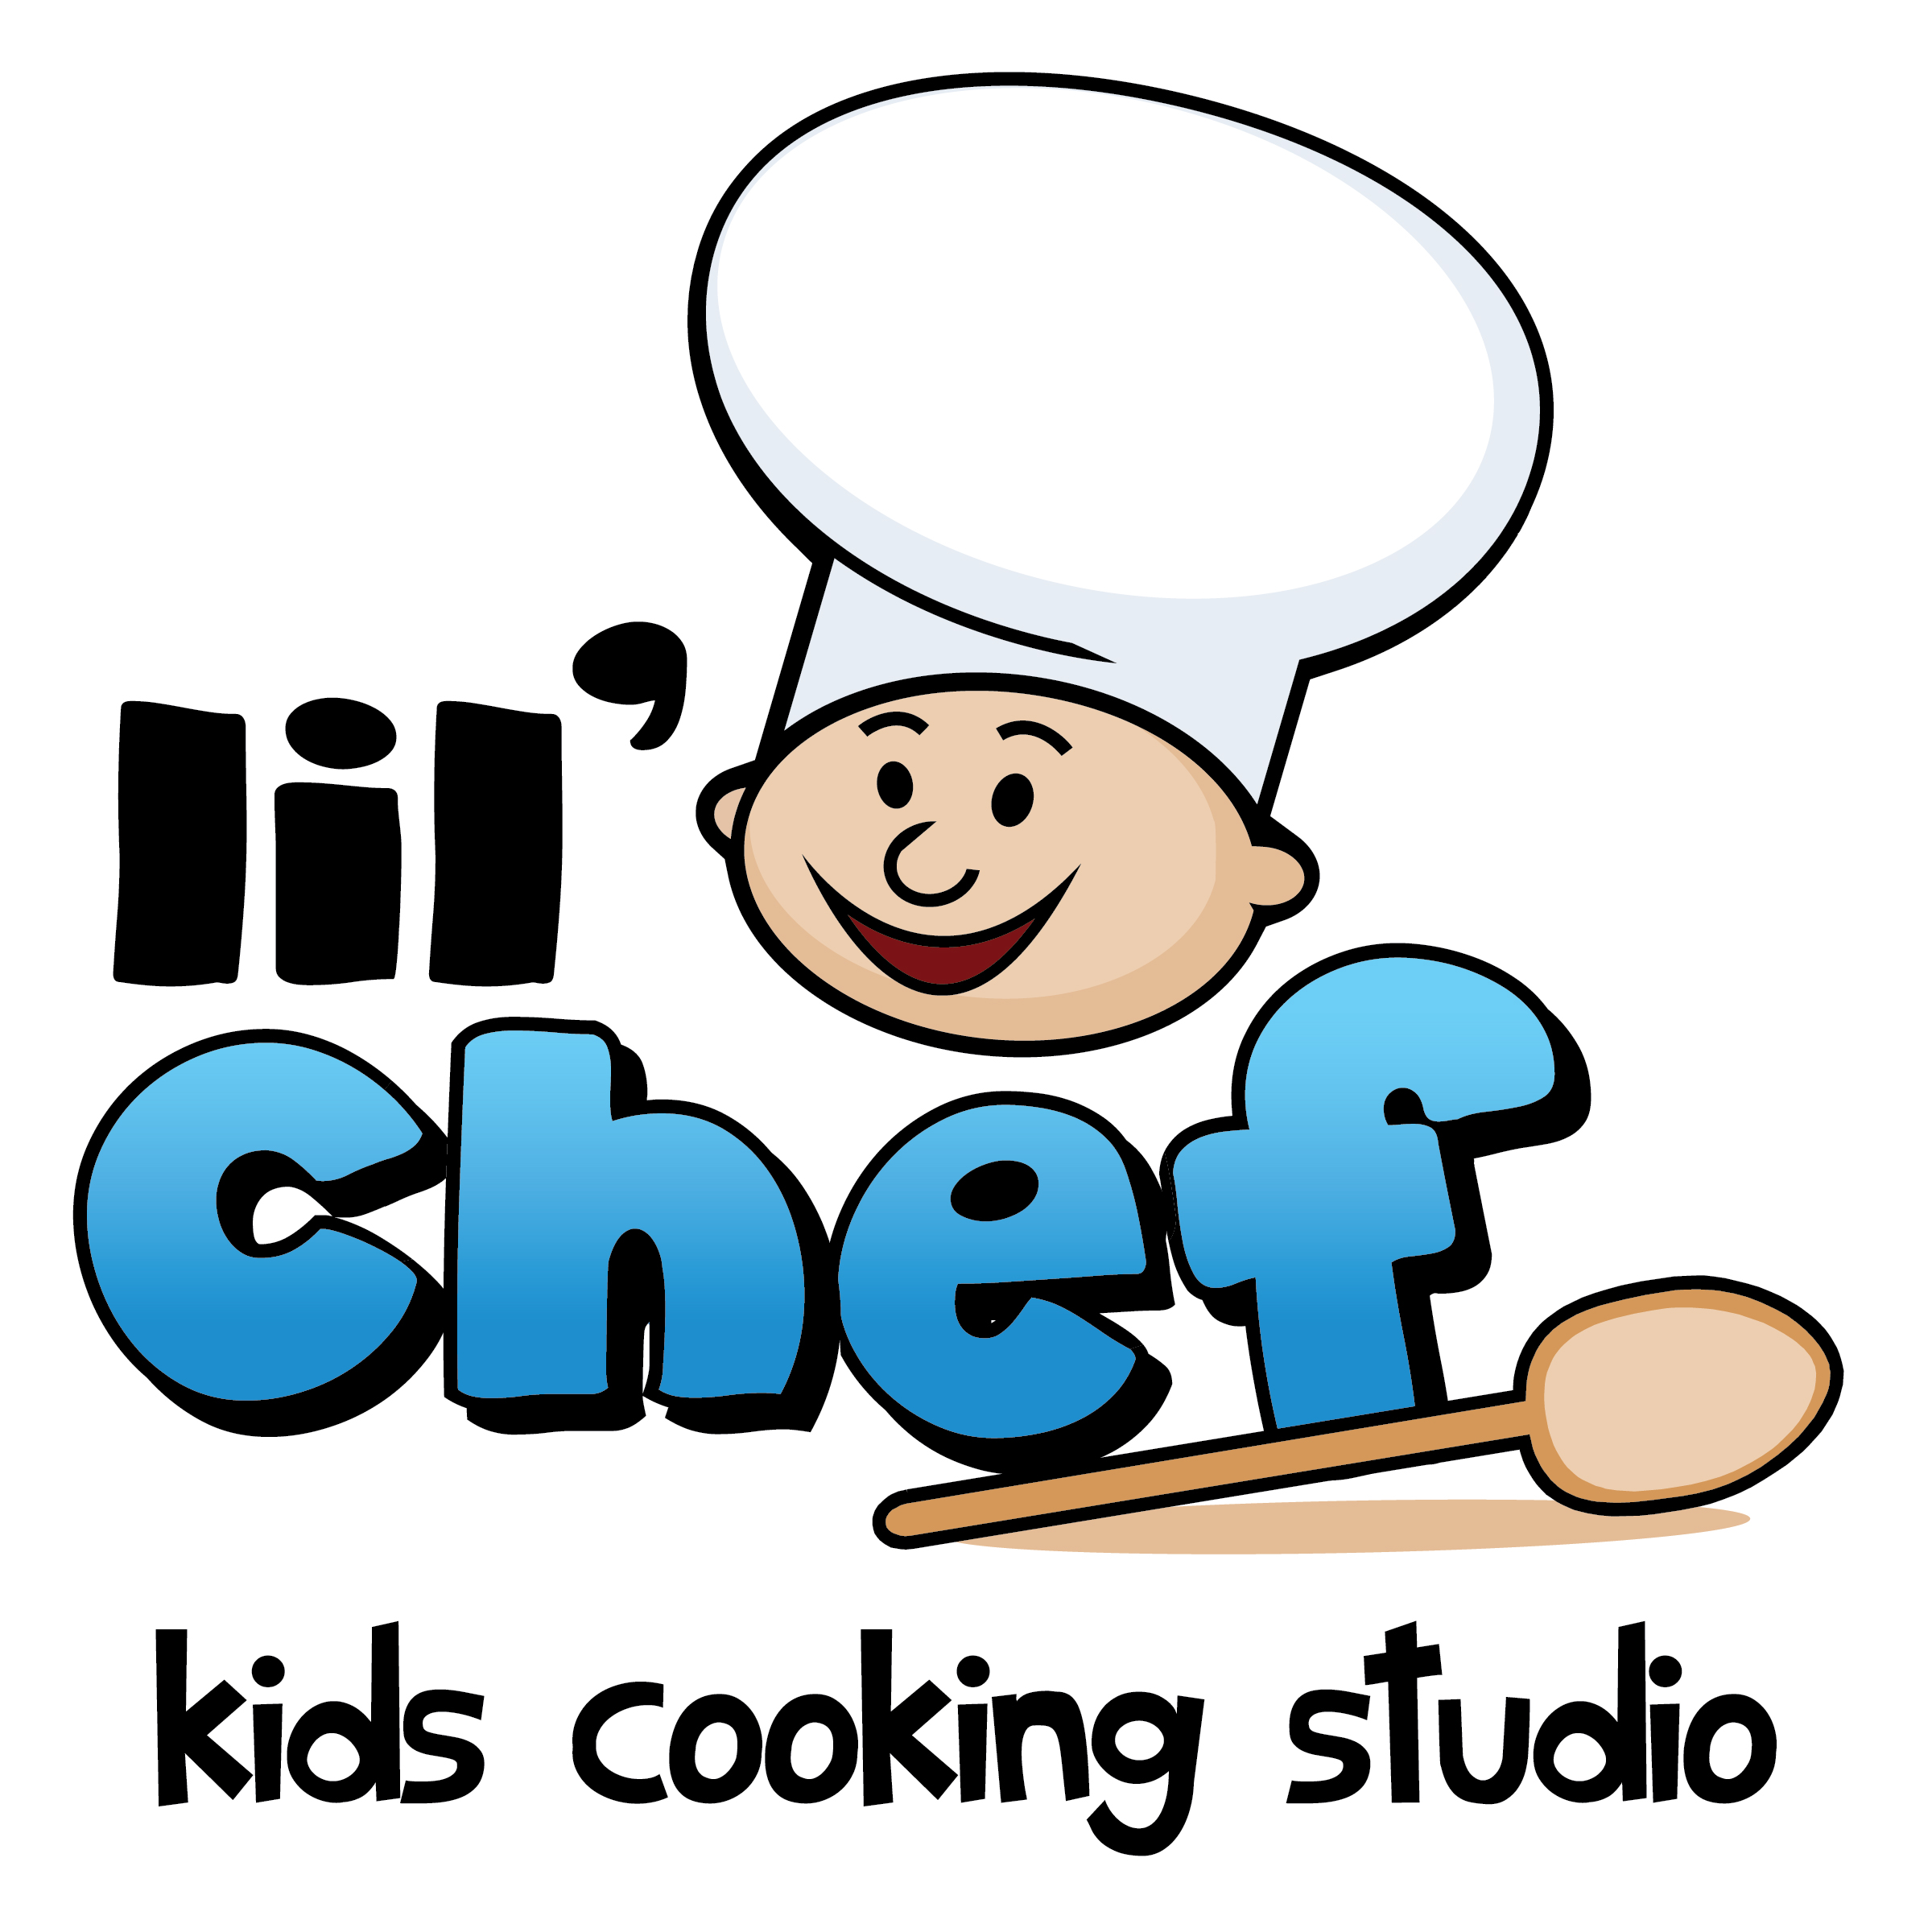 chef kids cooking studio clipart panda free clipart images